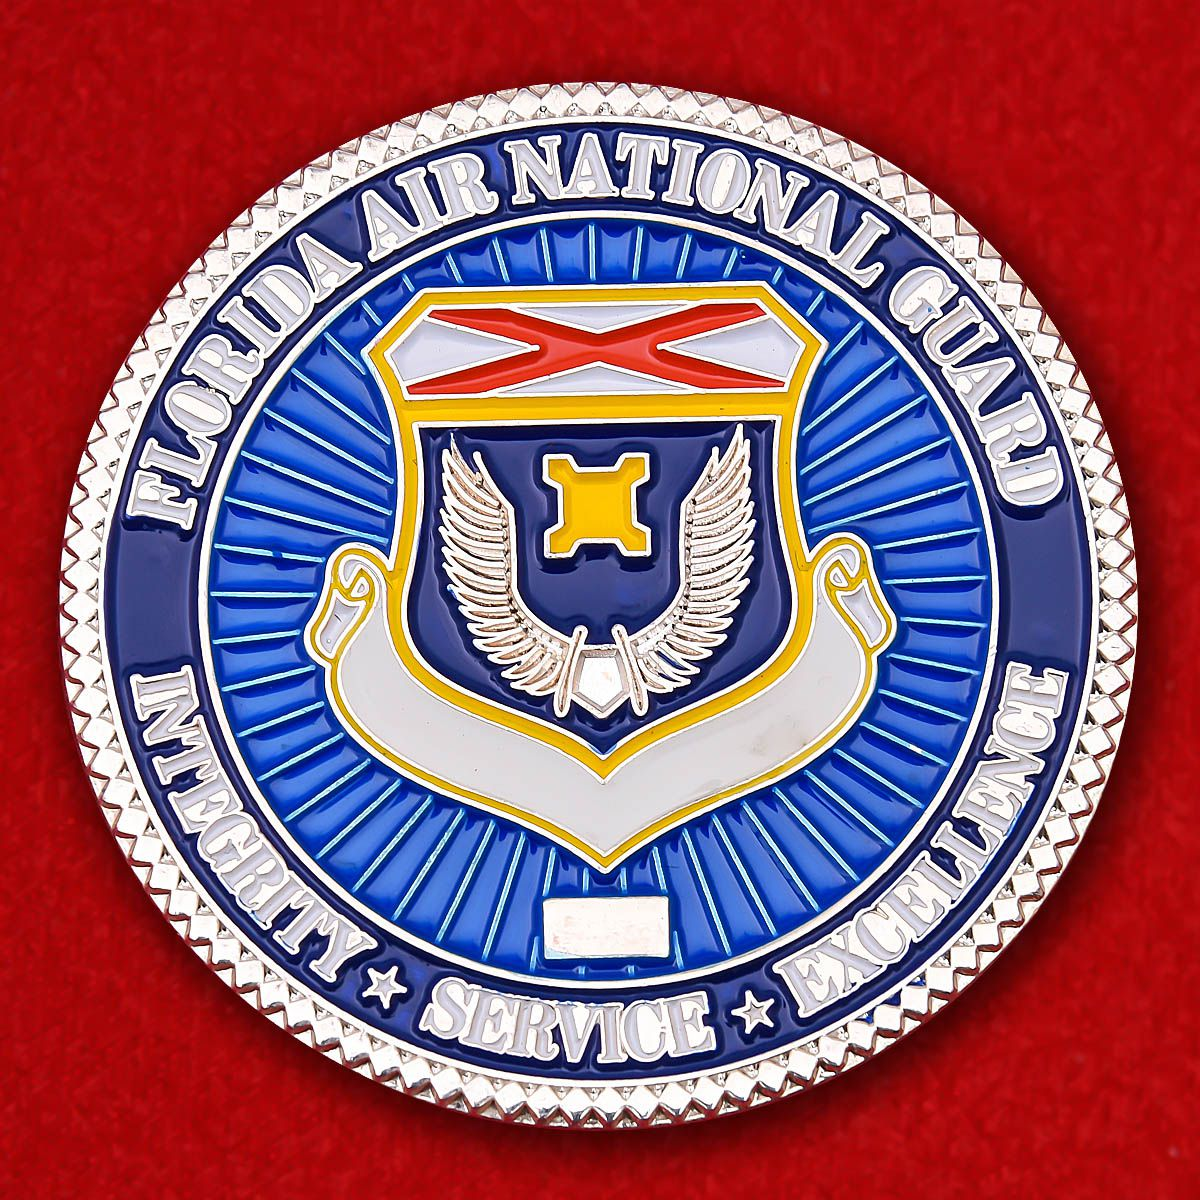 From Master Sergeant Florida Air National Guard Challenge Coin